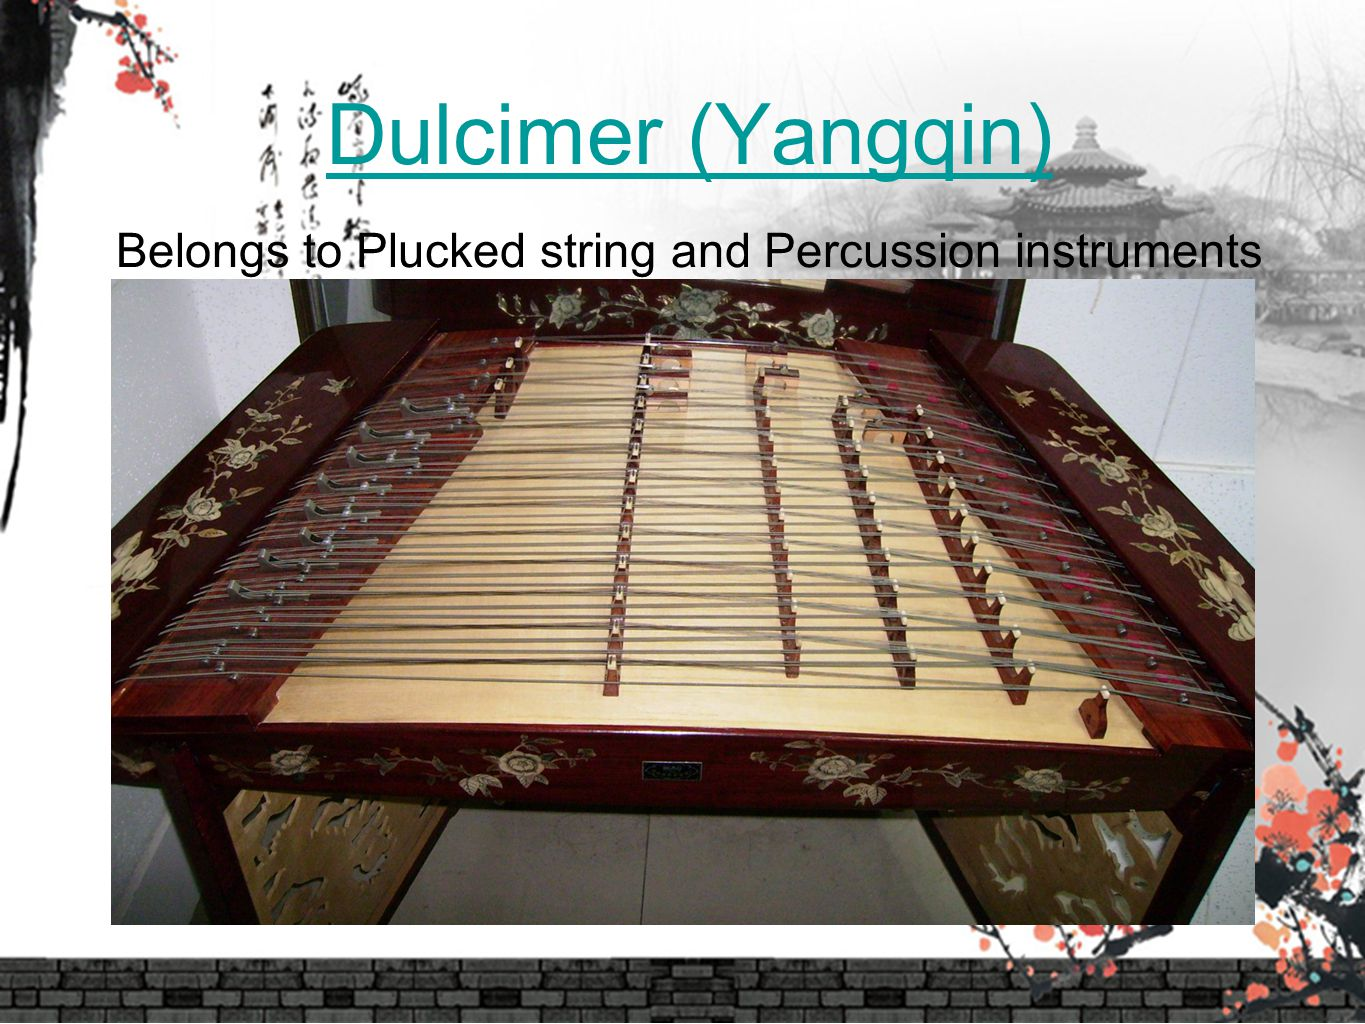 Dulcimer (Yangqin) Belongs to Plucked string and Percussion instruments